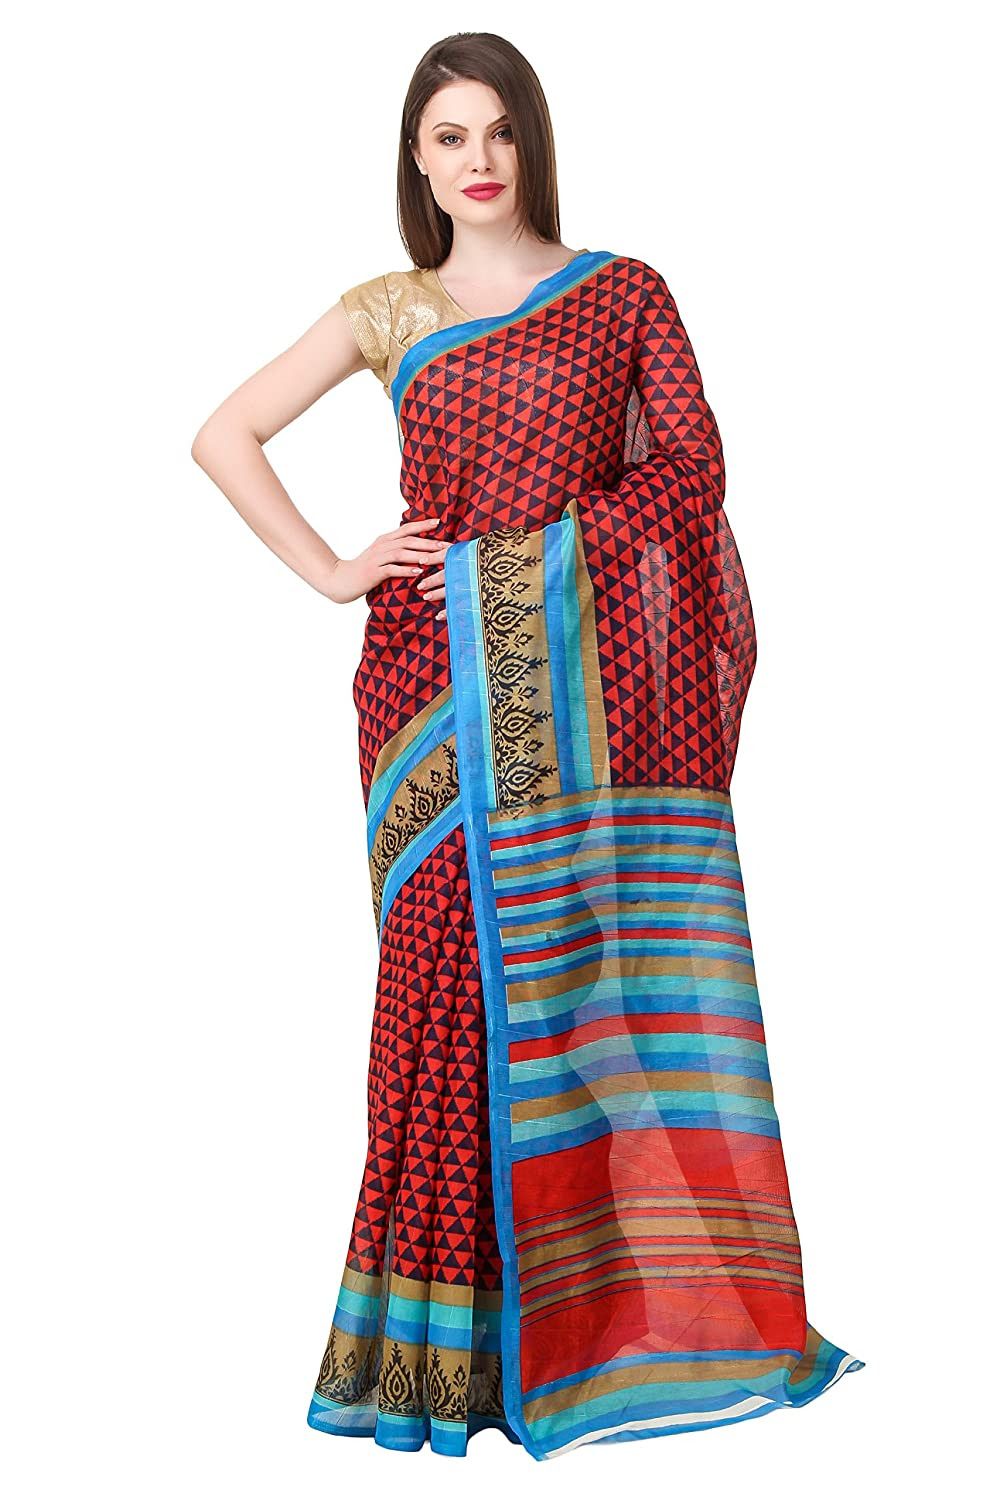 Binny Creation Women's Cotton Saree